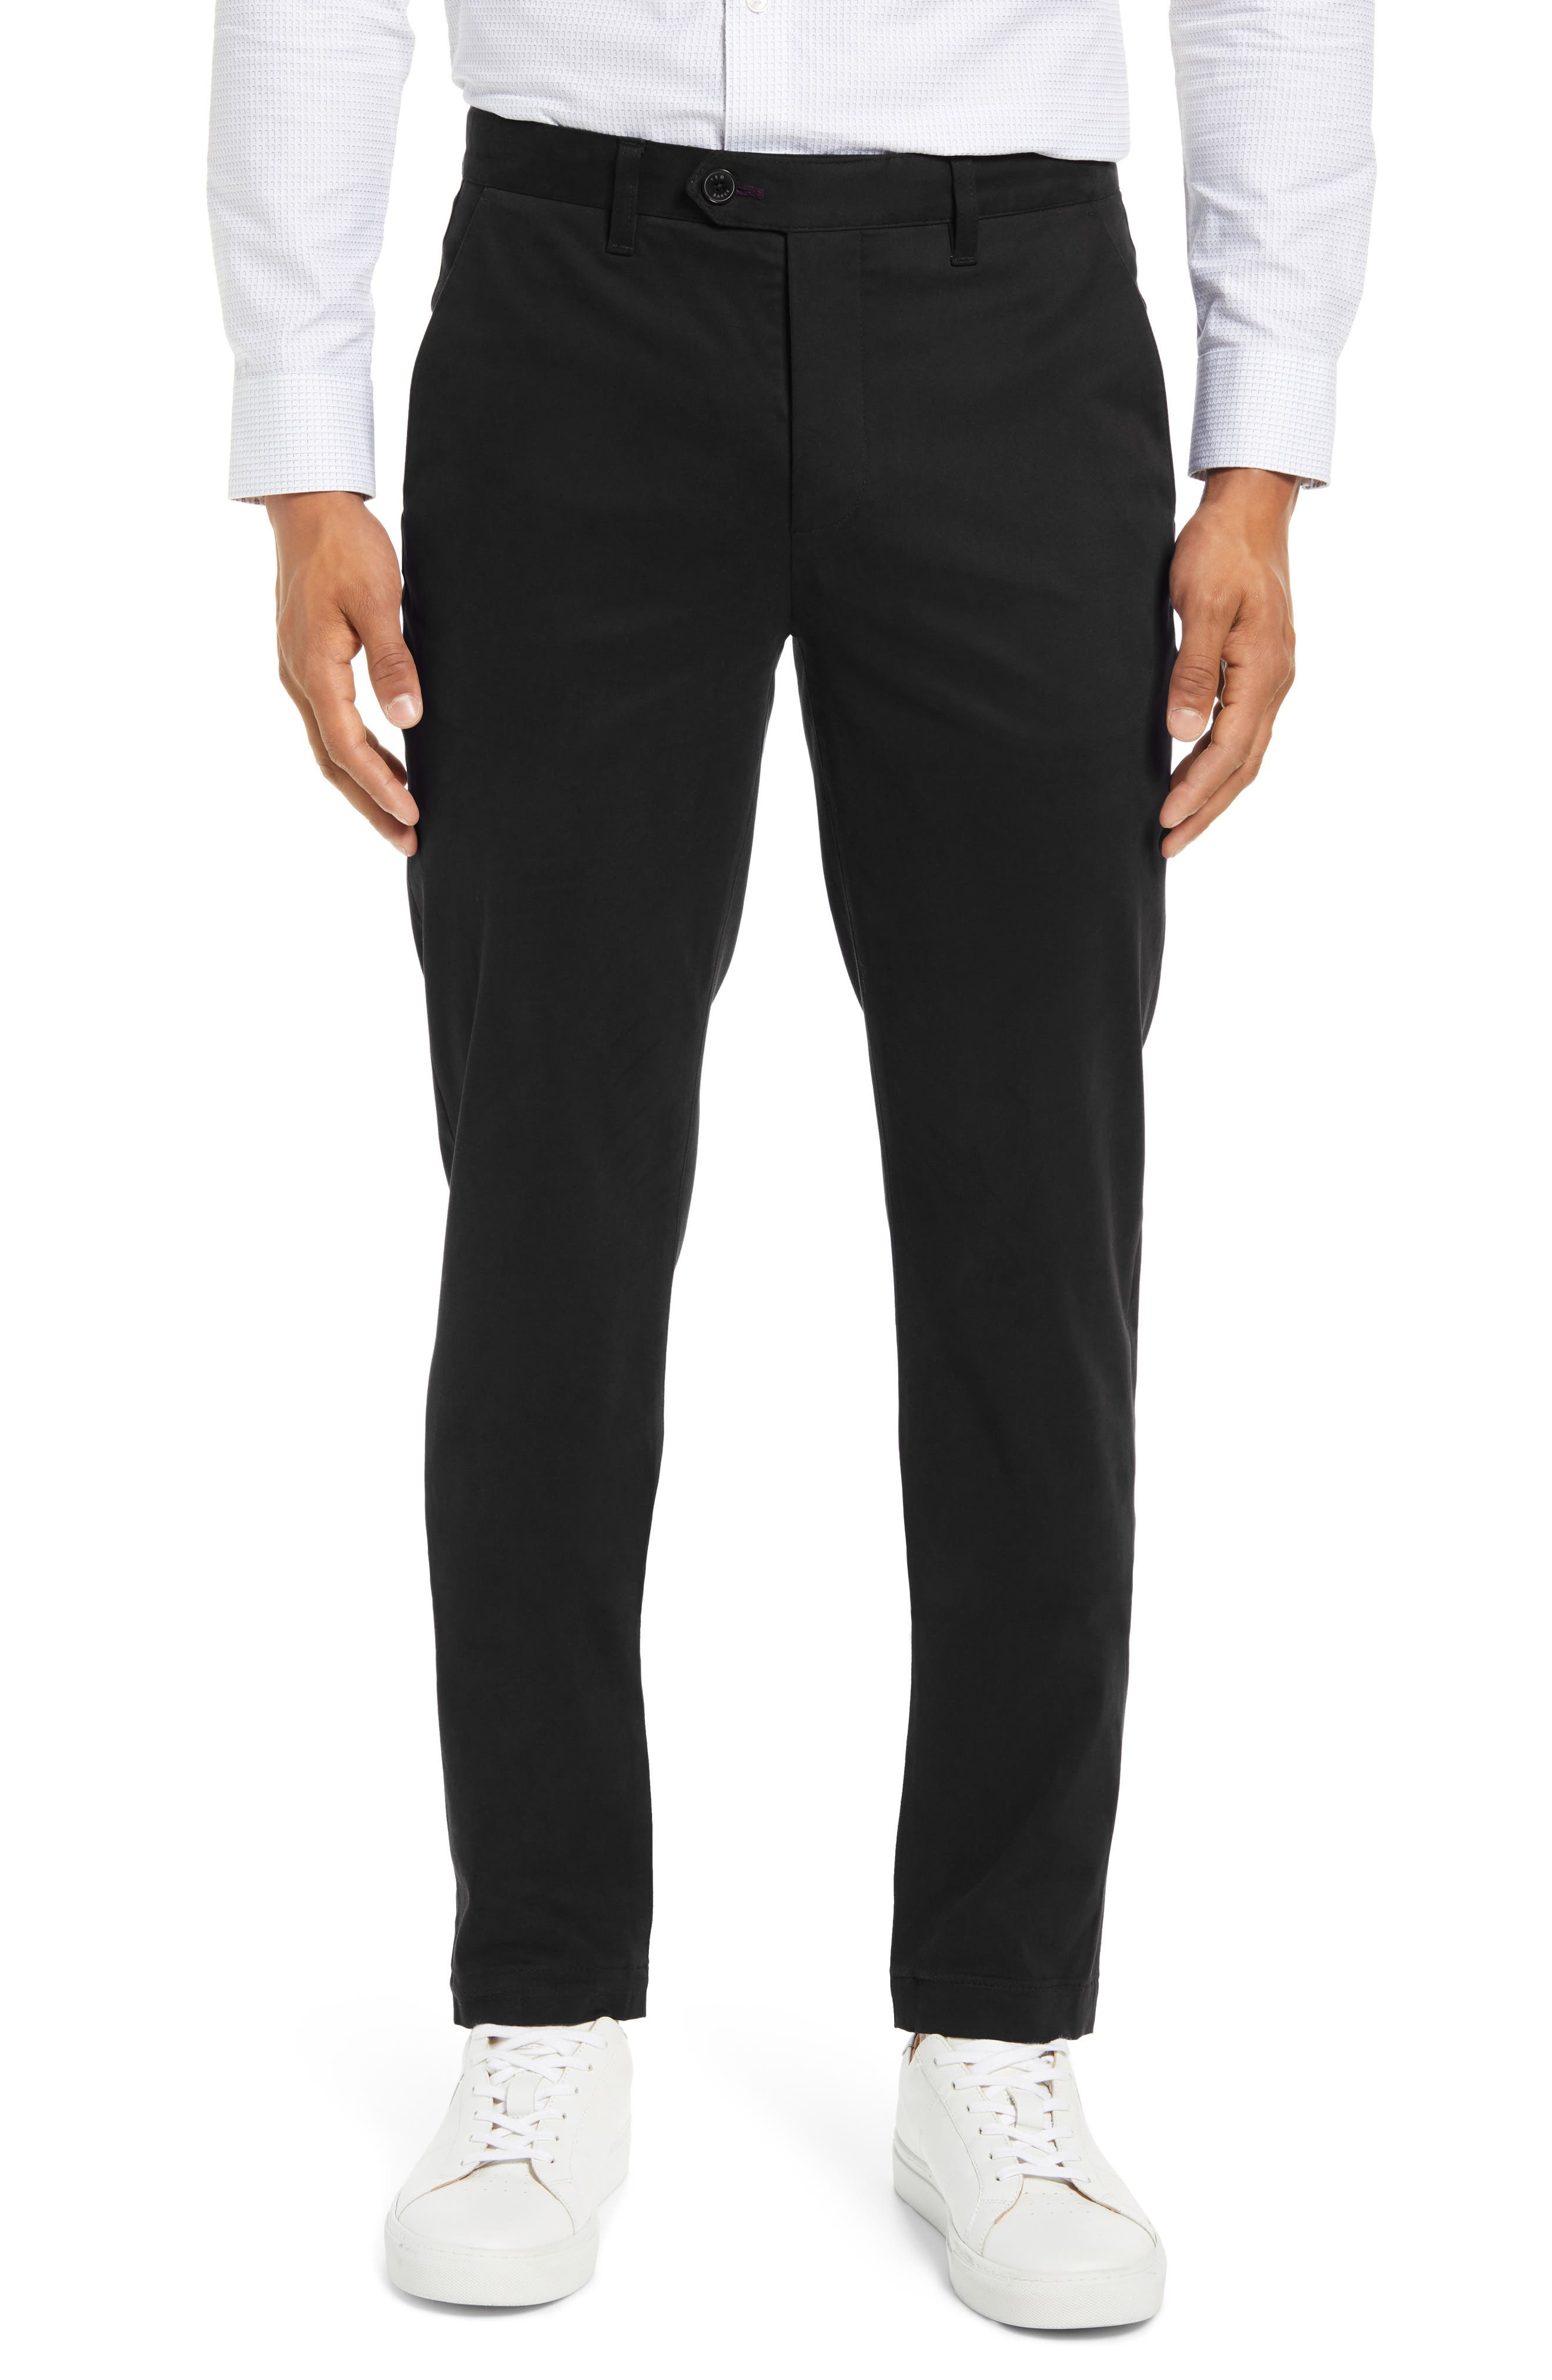 Image of Ted Baker London Indony Slim Fit Flat Front Pants